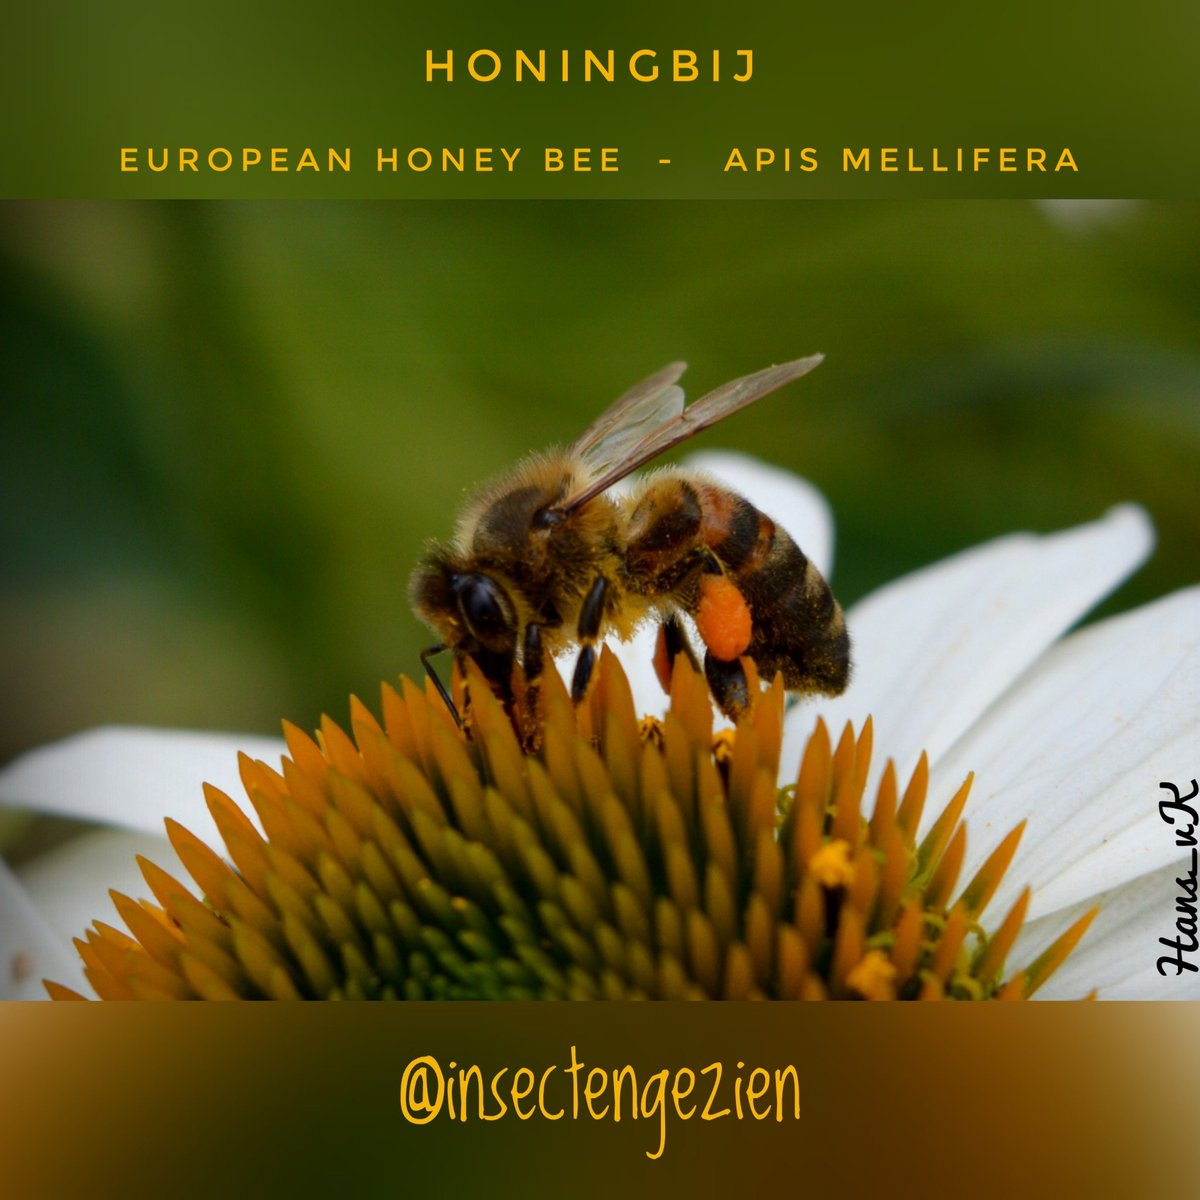 """@insectengezien  """"The European honey bee, found worldwide, is known for its delicious honey and painful sting""""   @waarneming @volgdenatuur #birds_bees_flowers_n_trees #honingbij #honeybee #insect<br>http://pic.twitter.com/AsGno1dvGo"""